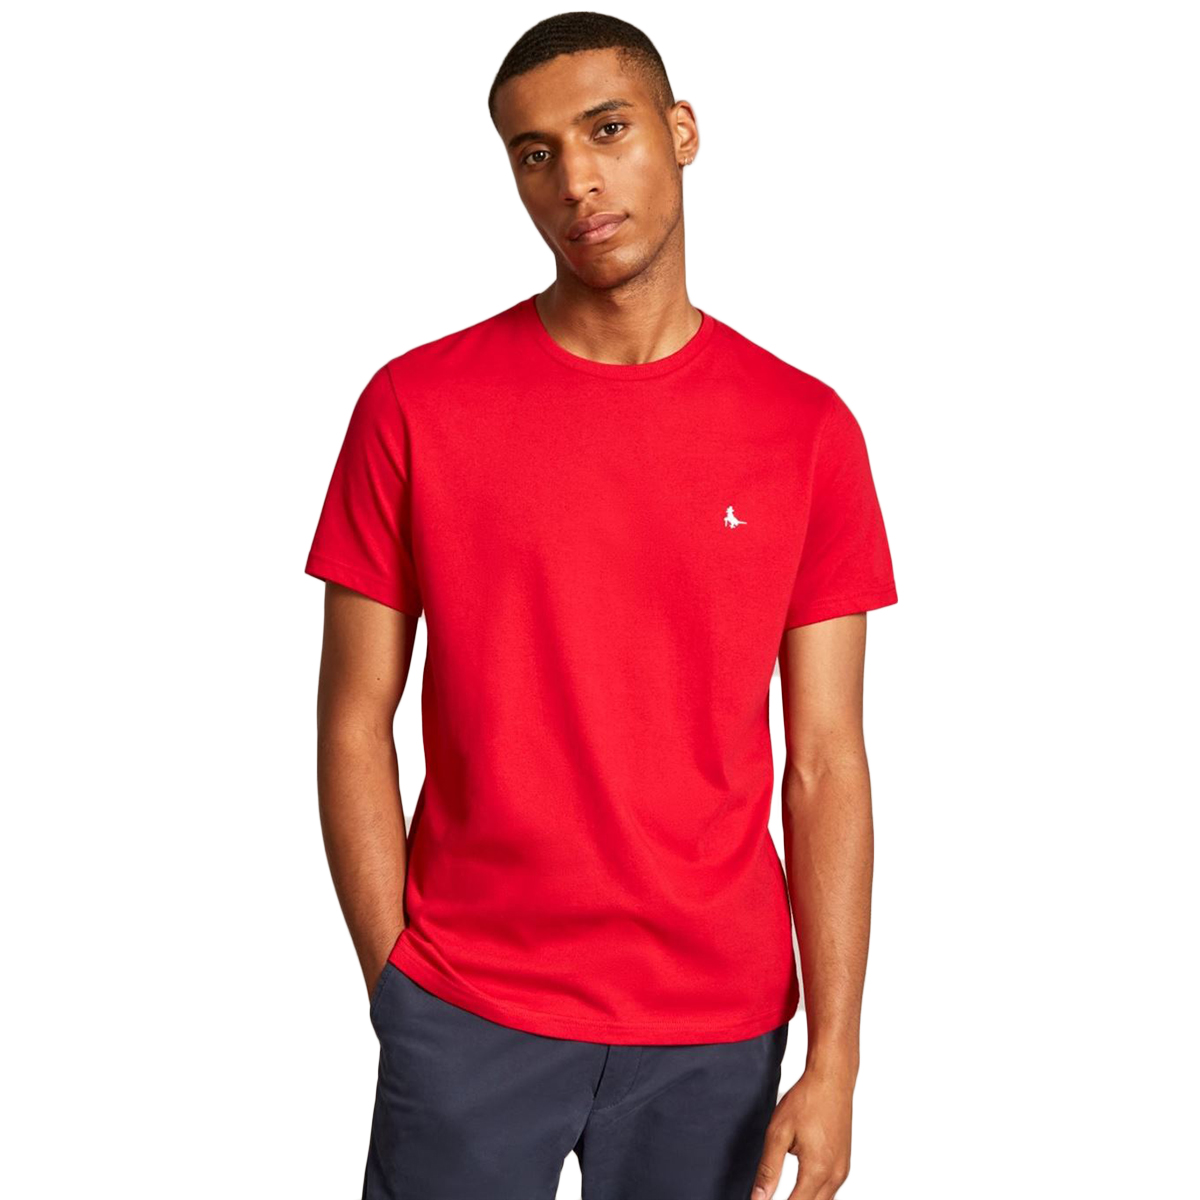 Jack Wills Men's Sandleford Short-Sleeve Tee - Red, XS